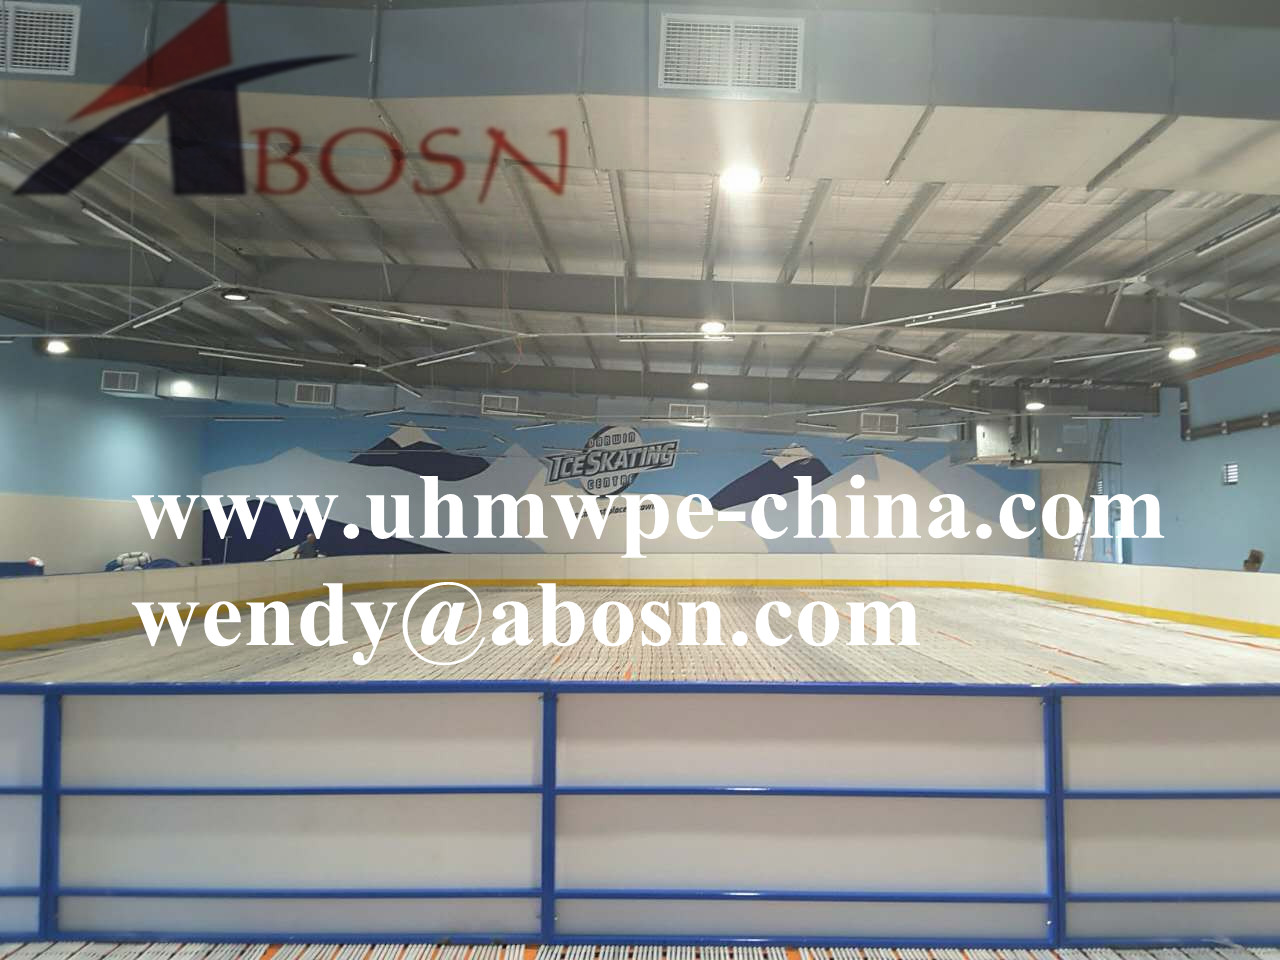 Dasher Boards | Rink Dividers | Hockey Rink Accessories